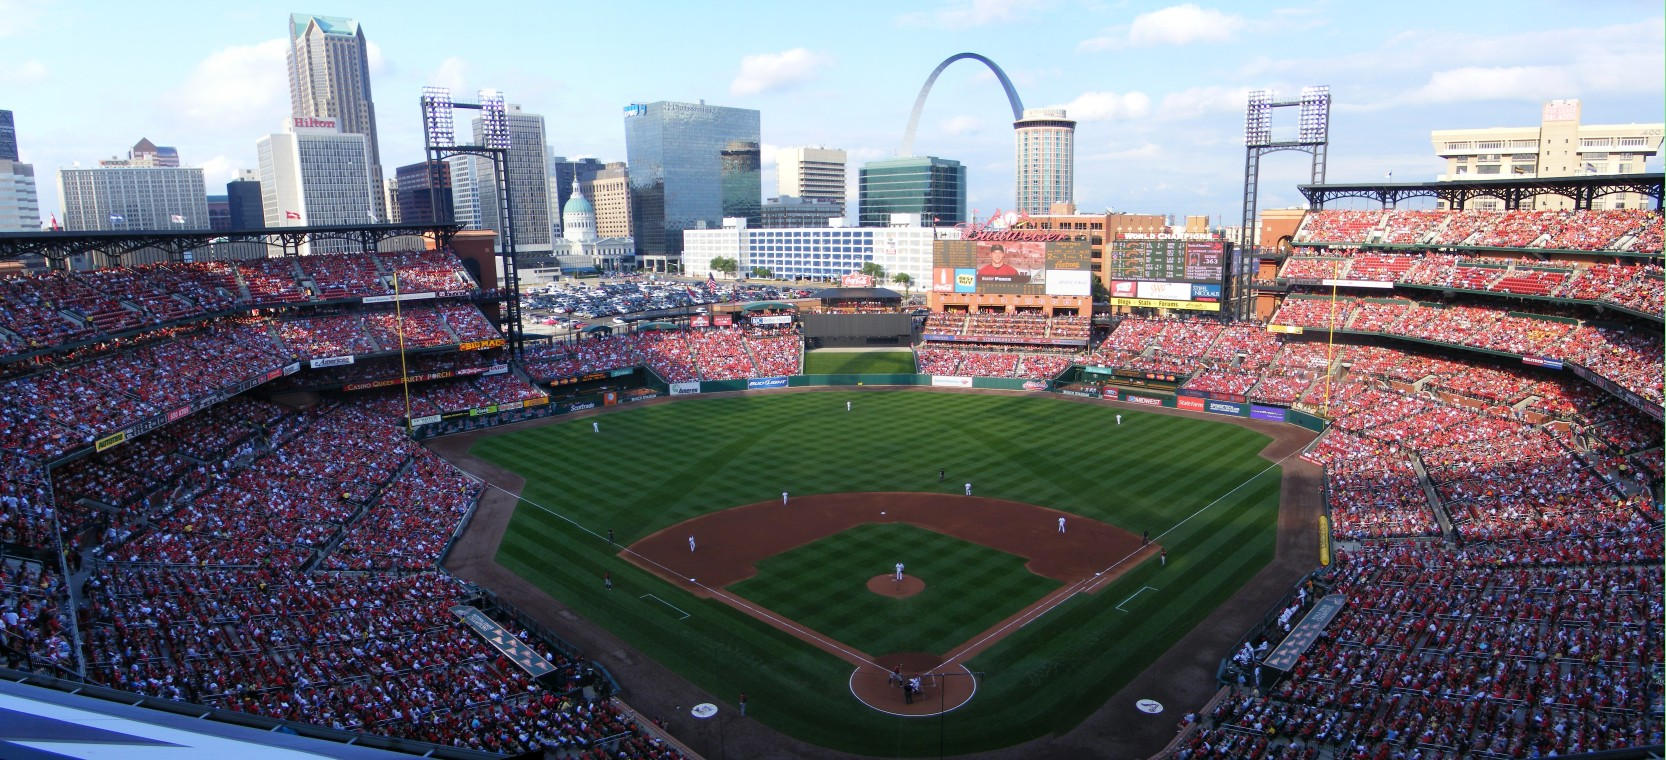 Busch Stadium in St. Louis: an oasis for white people to escape the reality of a city awash in black dysfunction (St. Louis Post-Dispatch attacked the whiteness of the crowds – and team – in 2012)